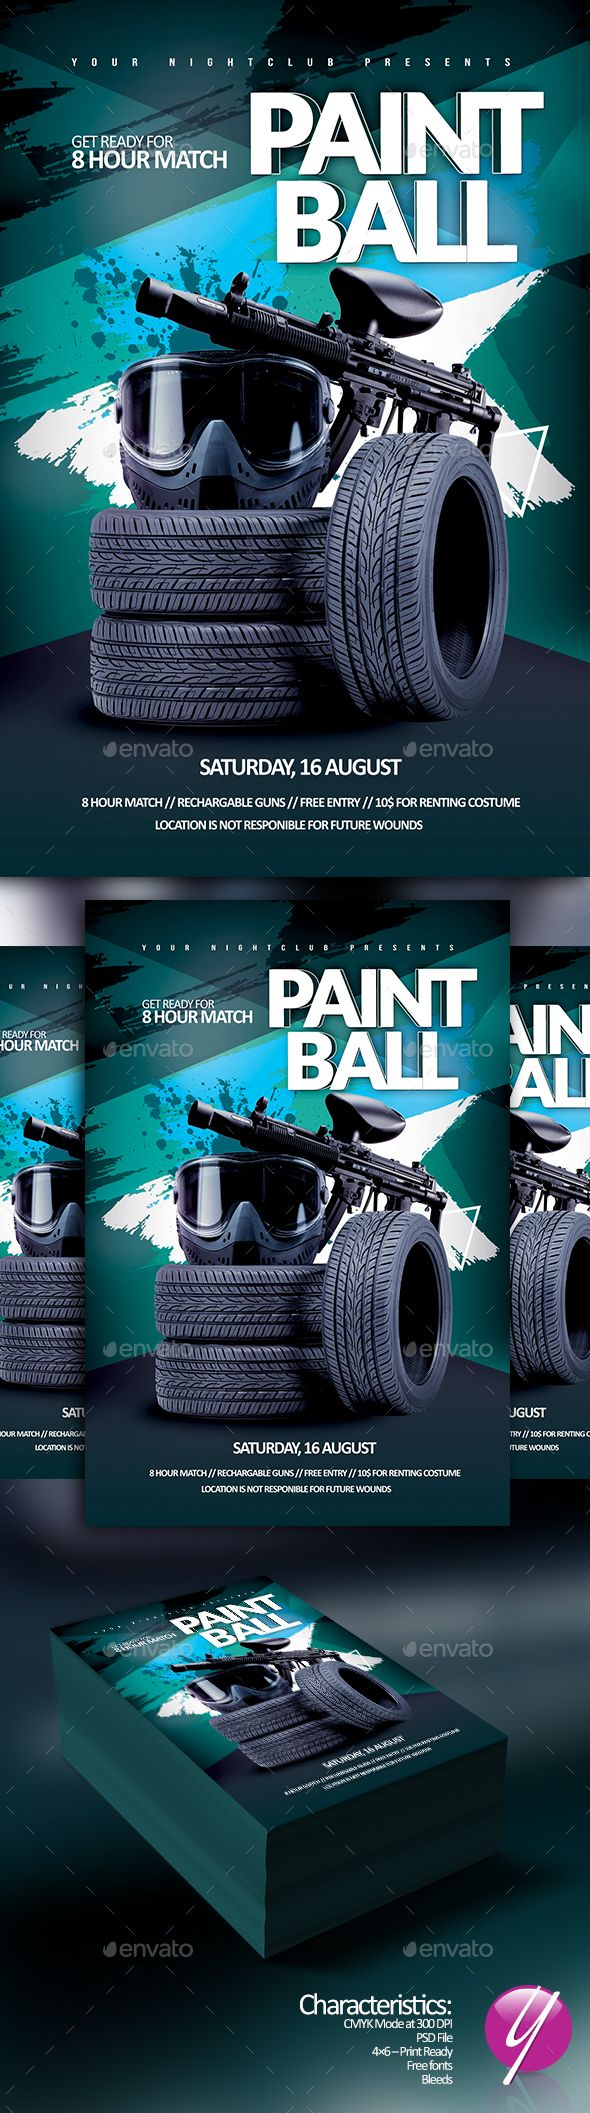 paintball match event paintball event flyers and event flyer